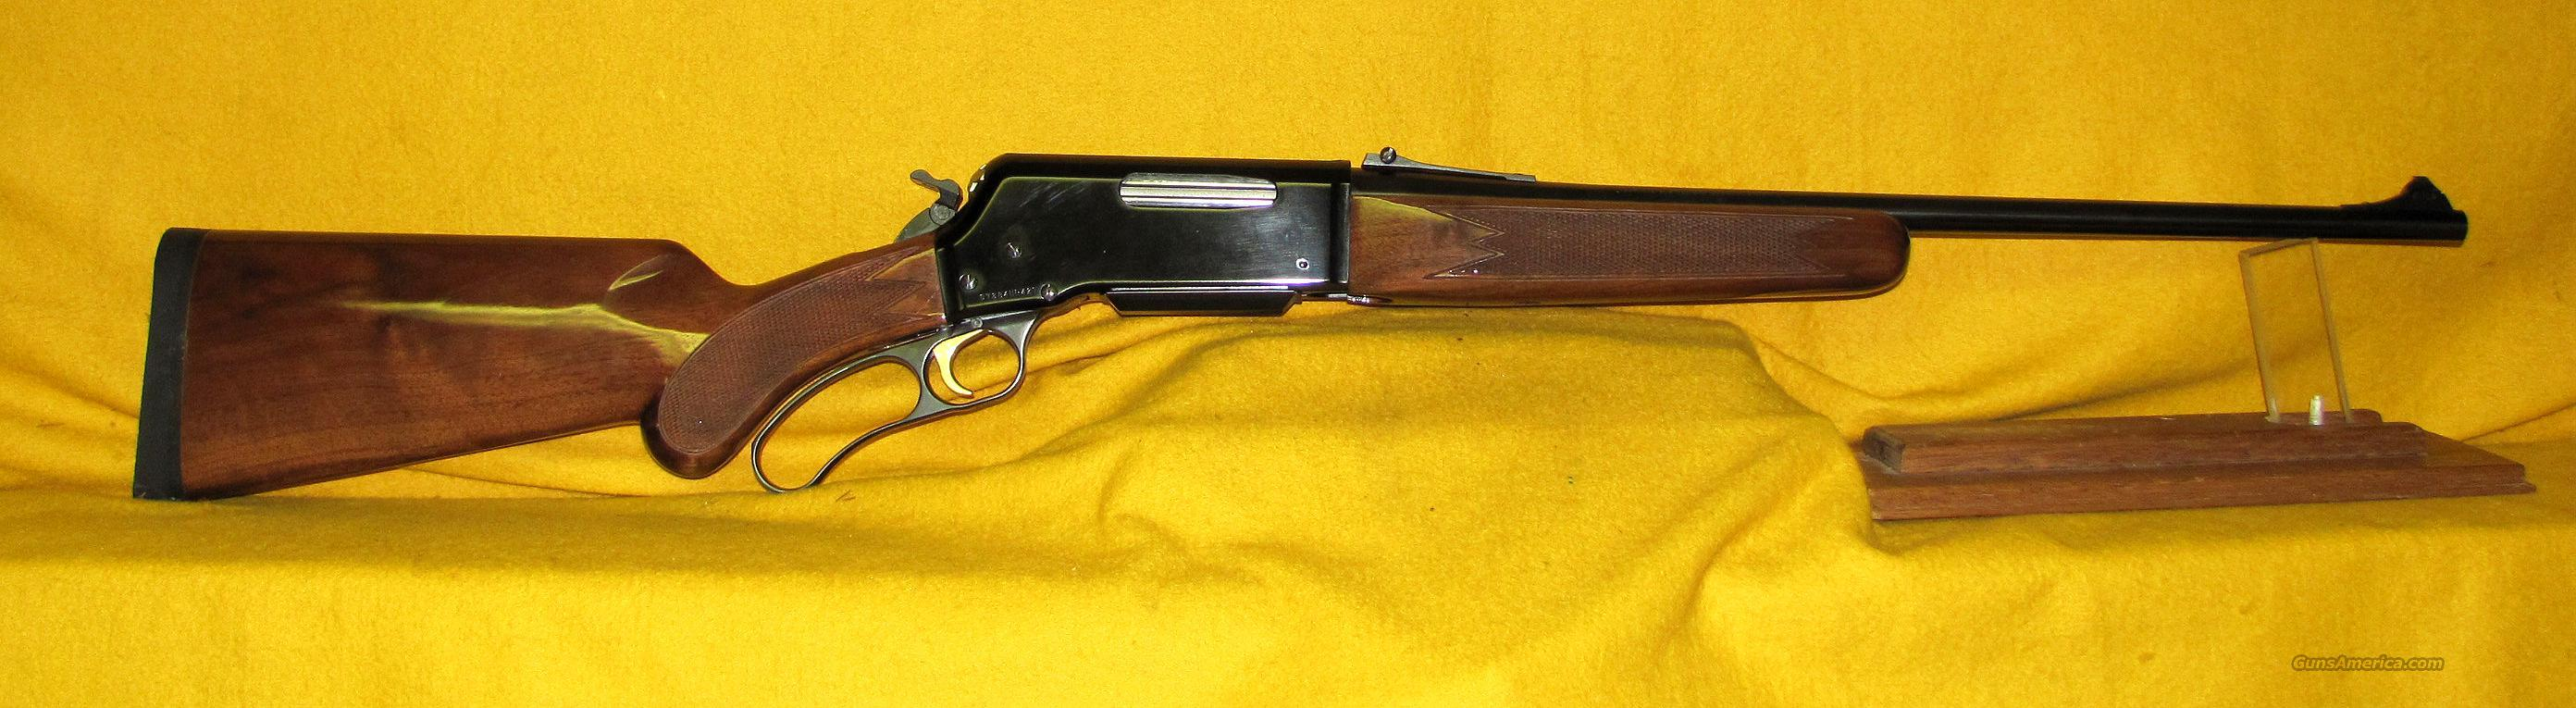 BROWNING LIGHTNING BLR  Guns > Rifles > Browning Rifles > Lever Action